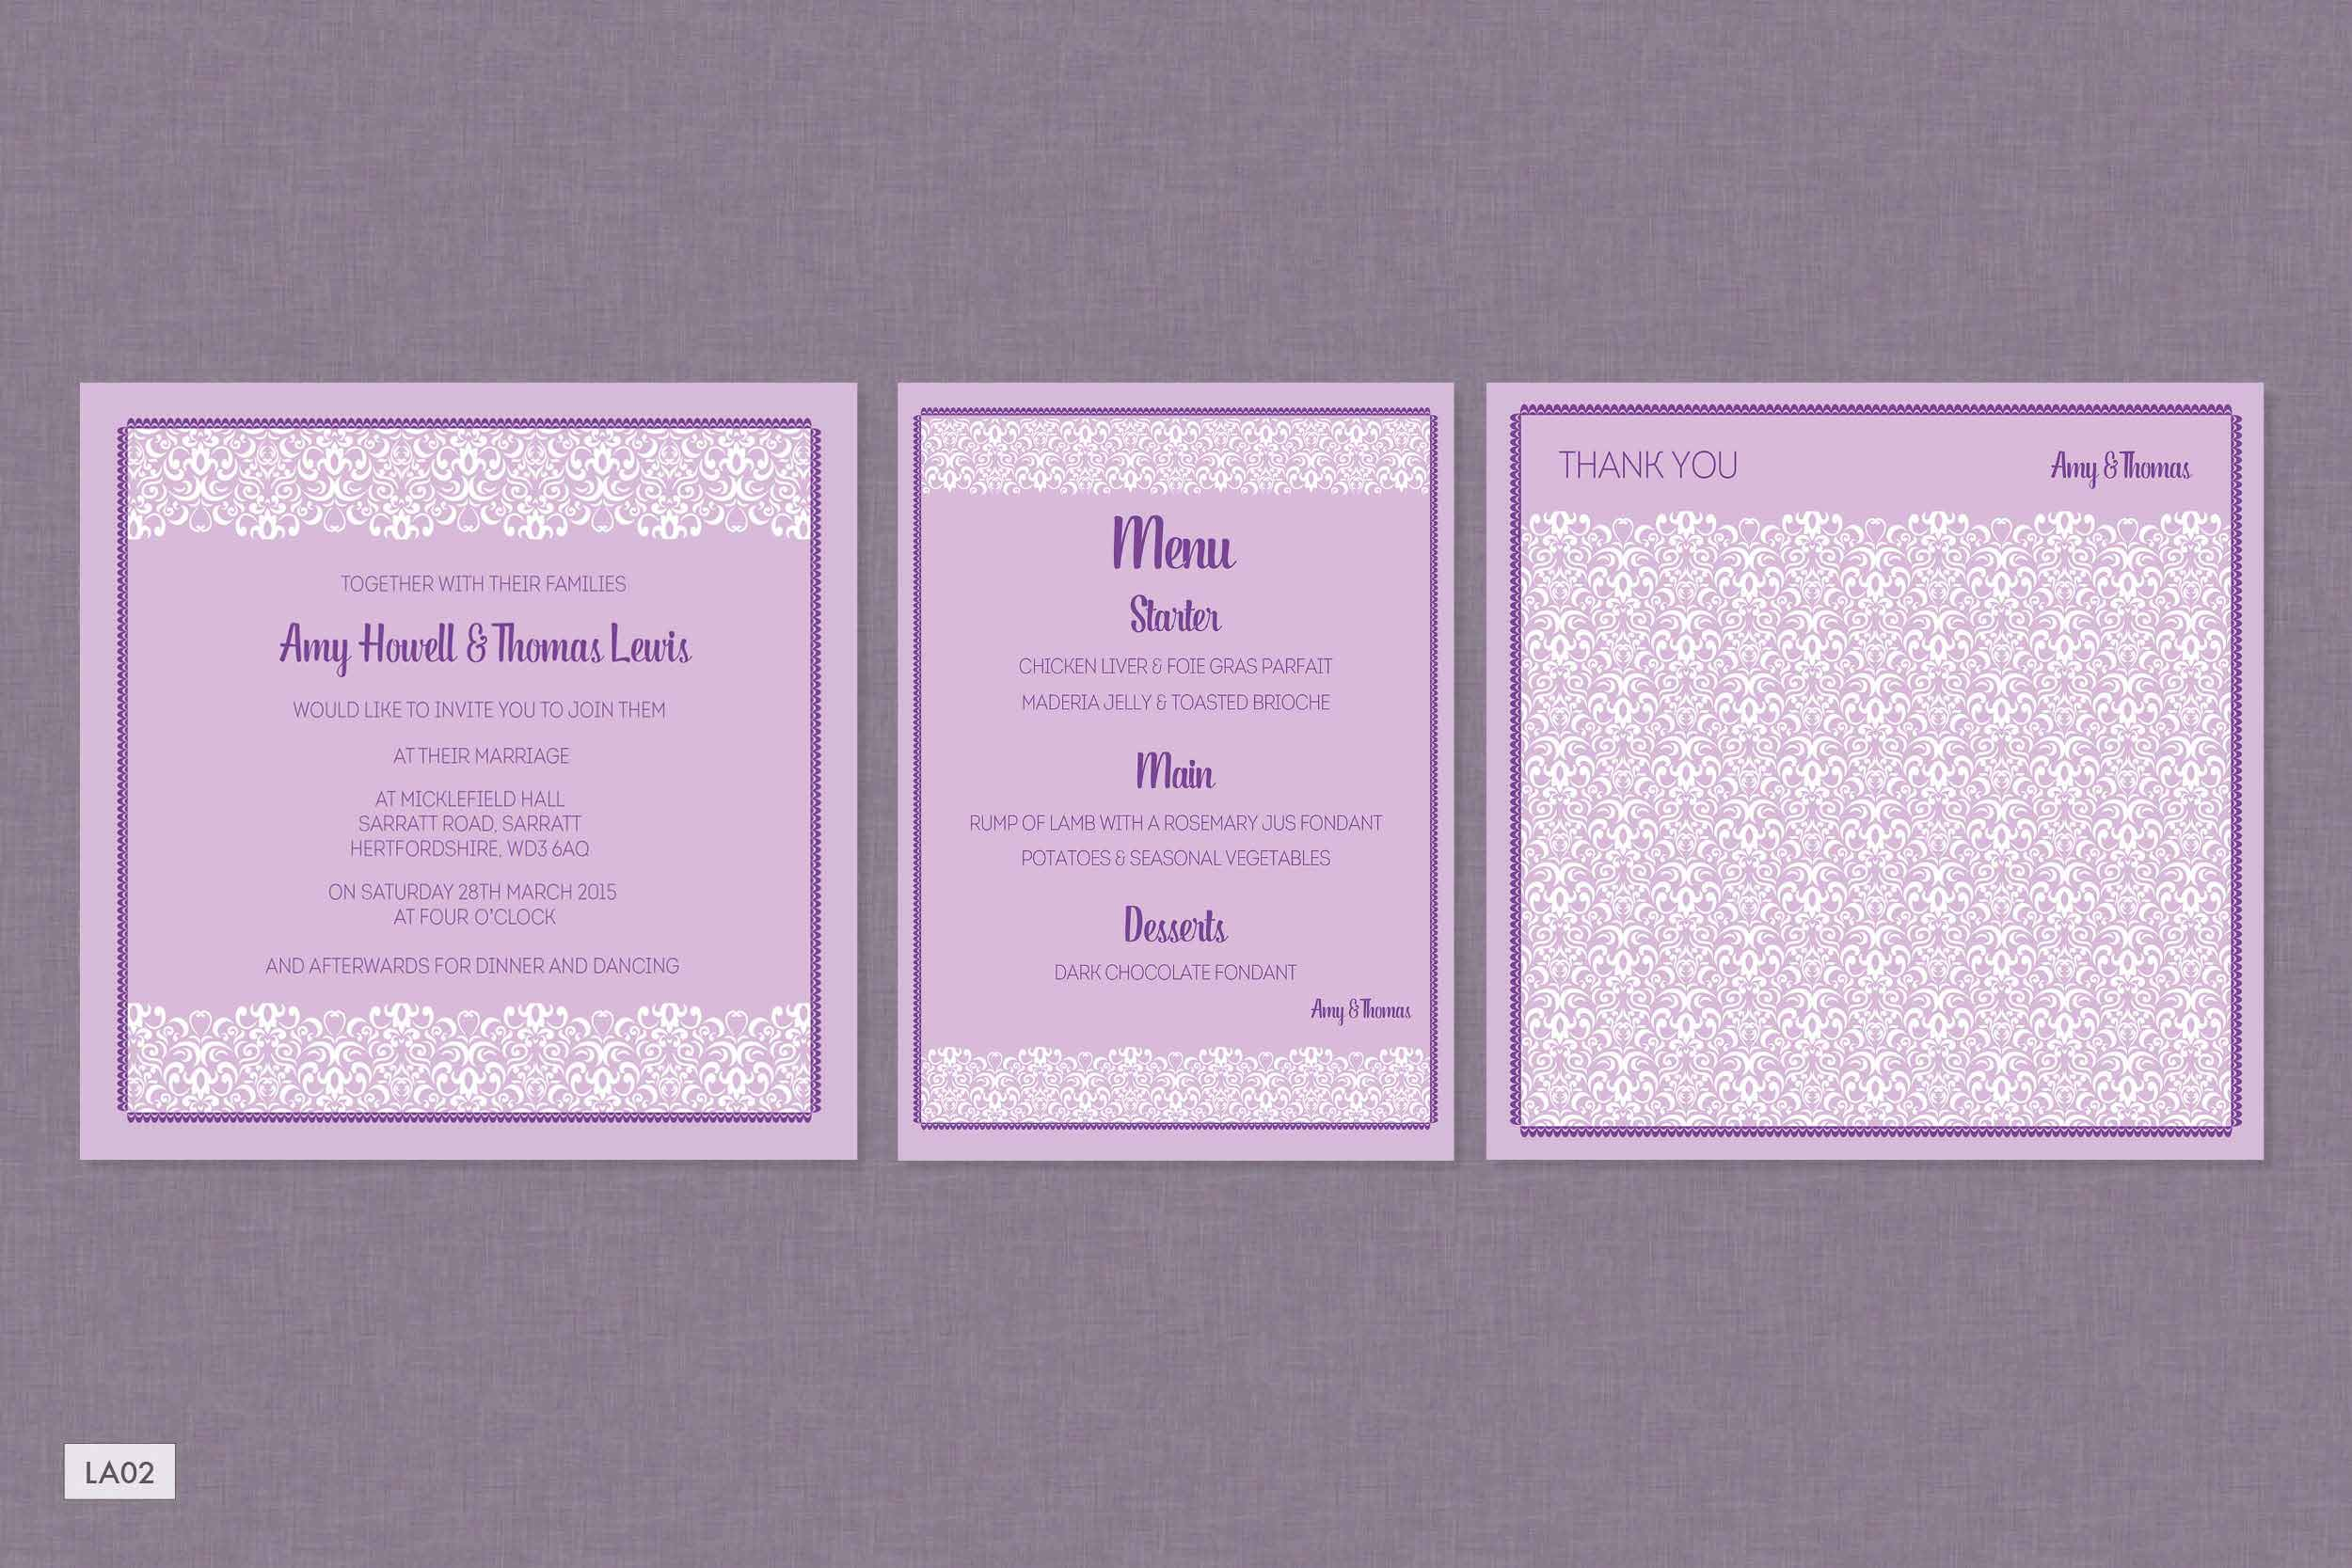 ananya-wedding-stationery-lace8.jpg